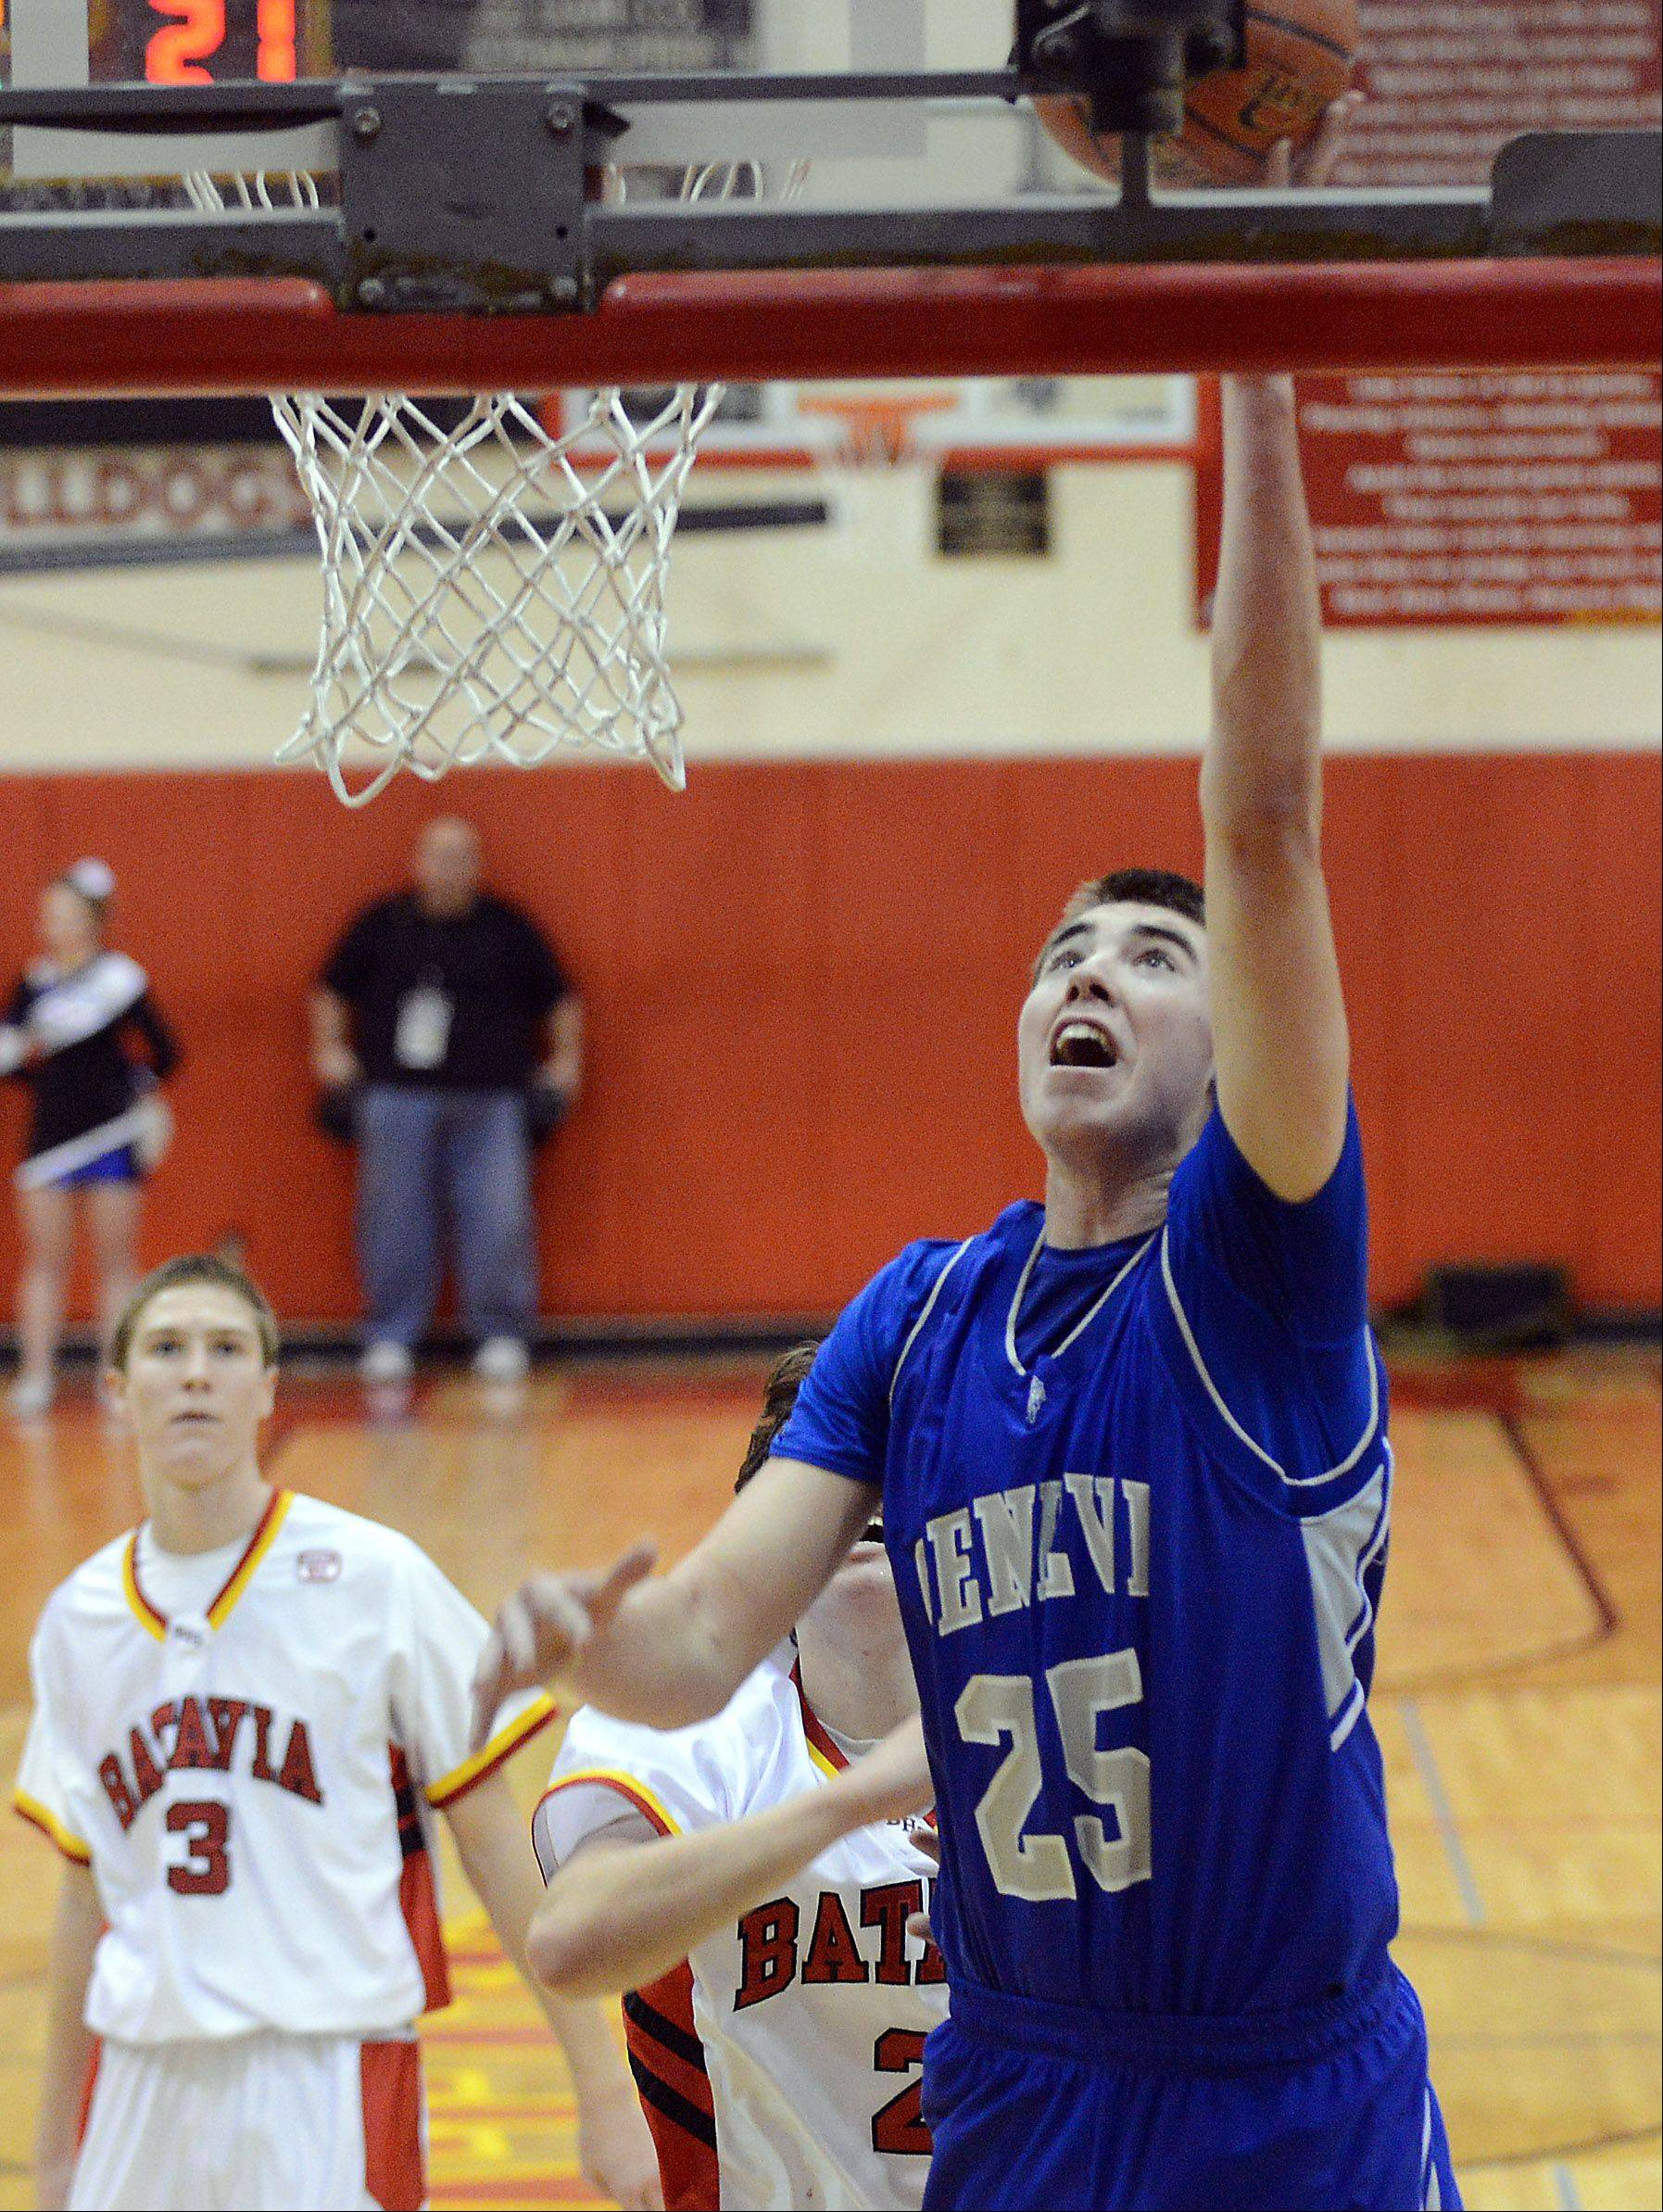 Geneva's Nate Navigato scores on a breakaway against Batavia.